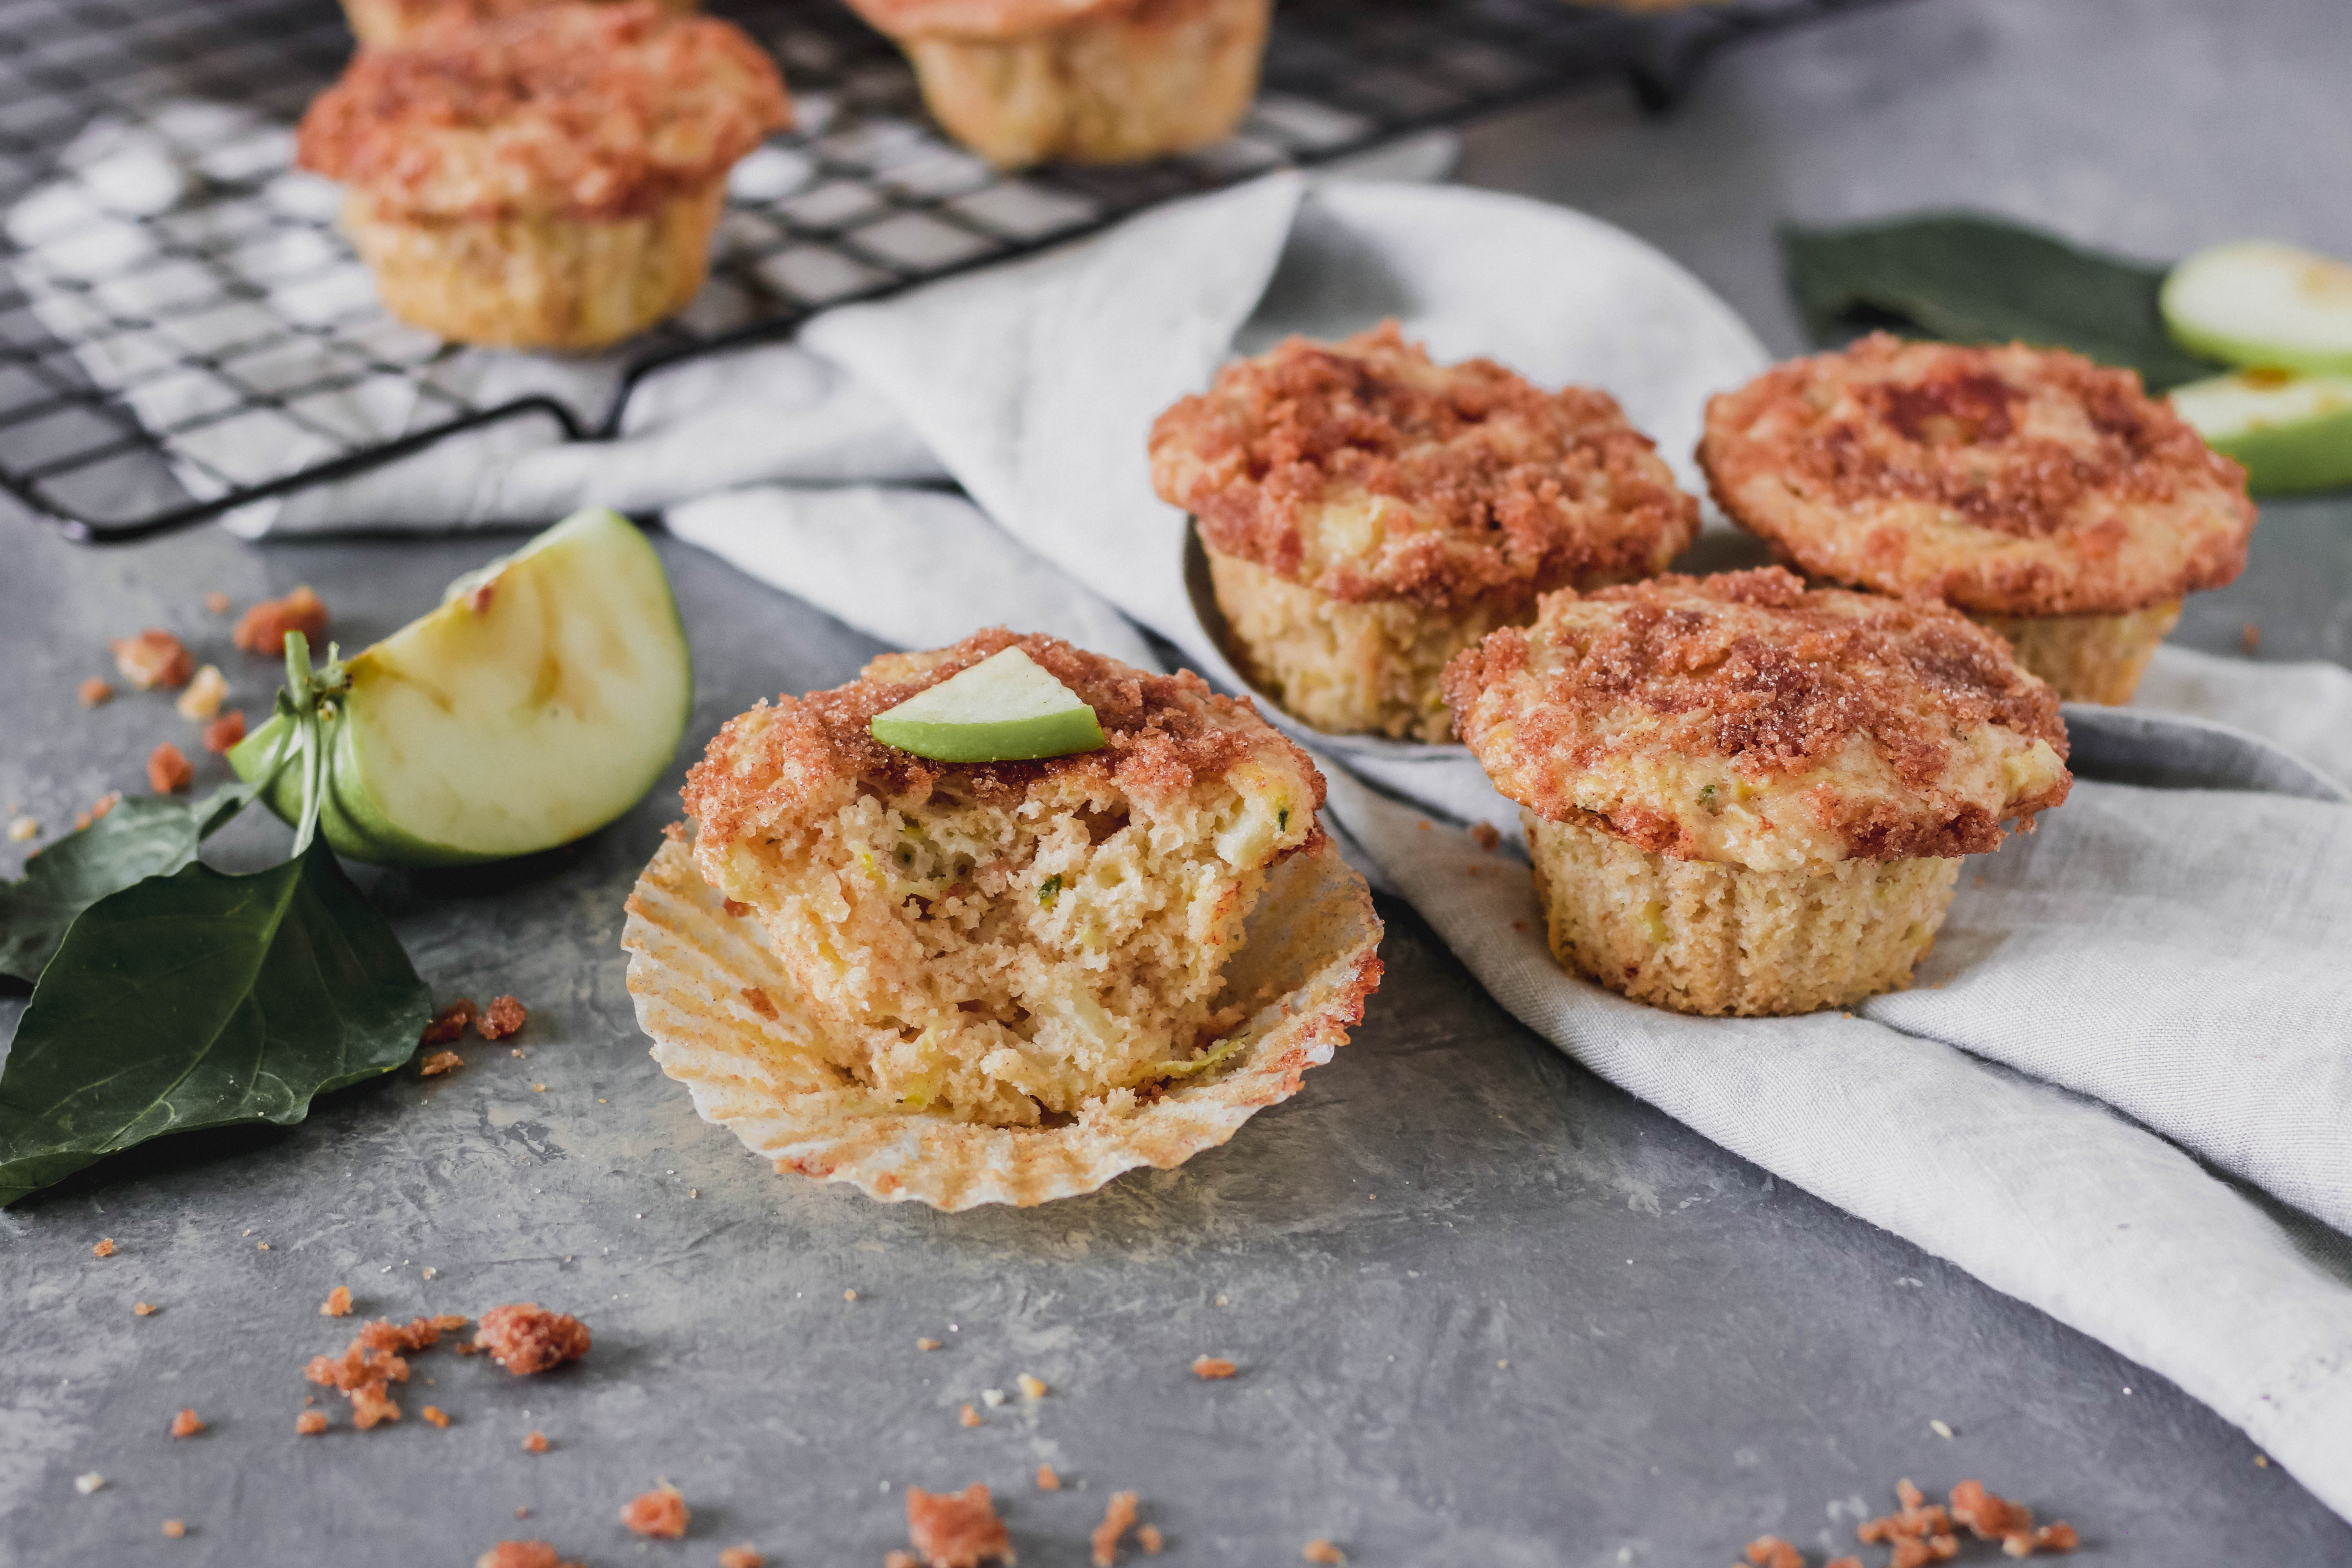 Apple Cinnamon Zucchini Muffins With Cinnamon Crumb Topping-2